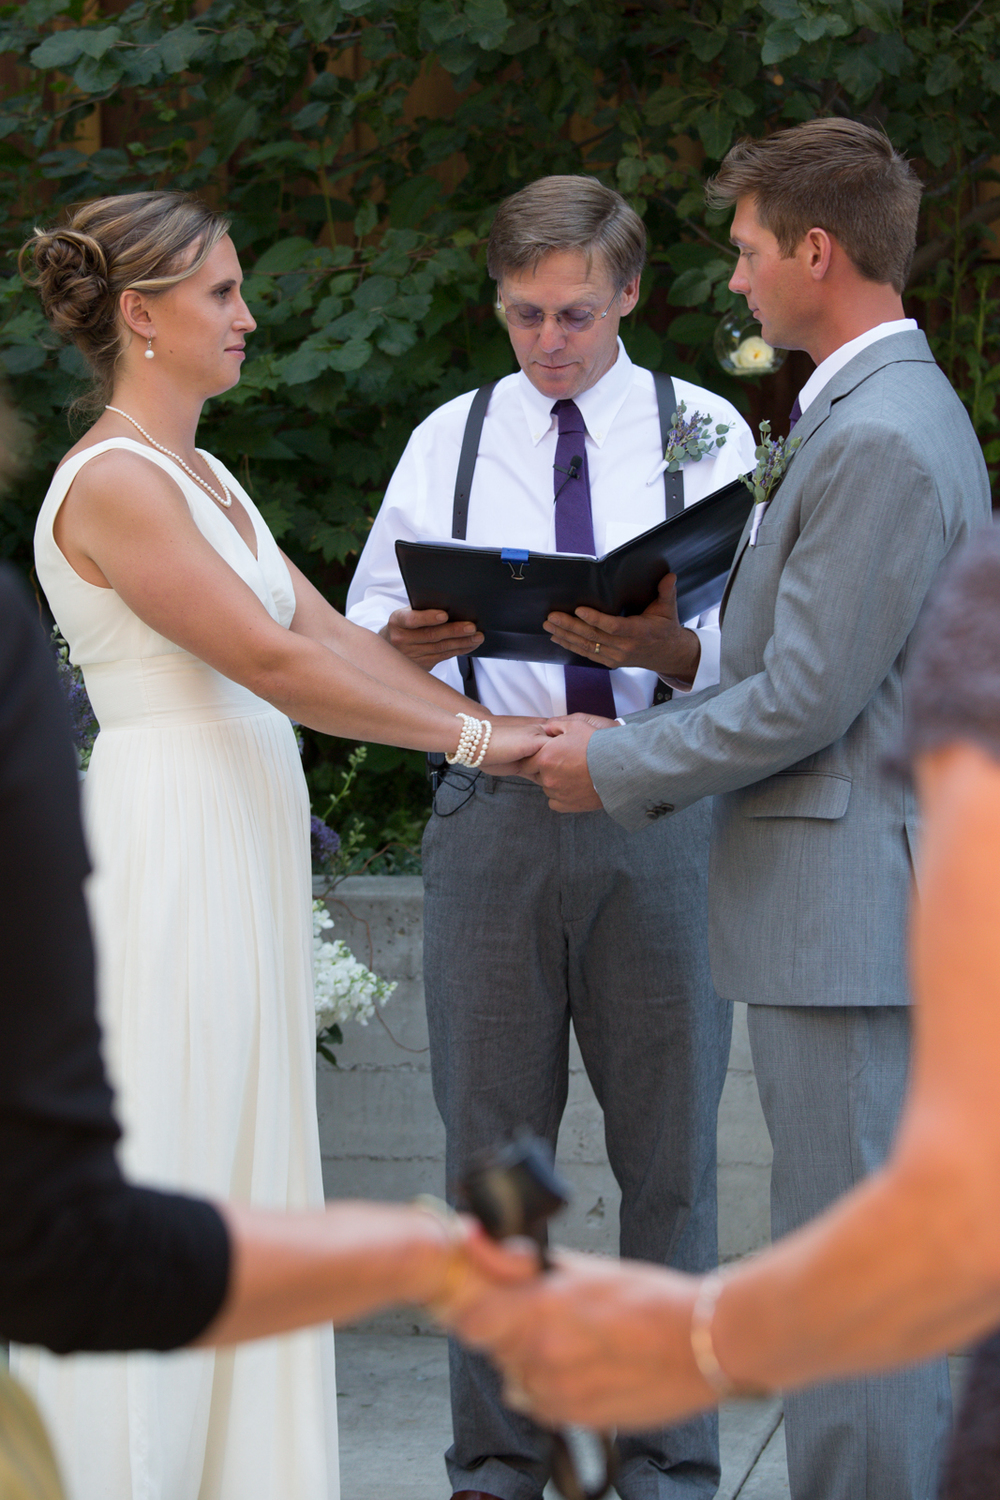 20130811_FishcerWedding_01053_EIP.jpg